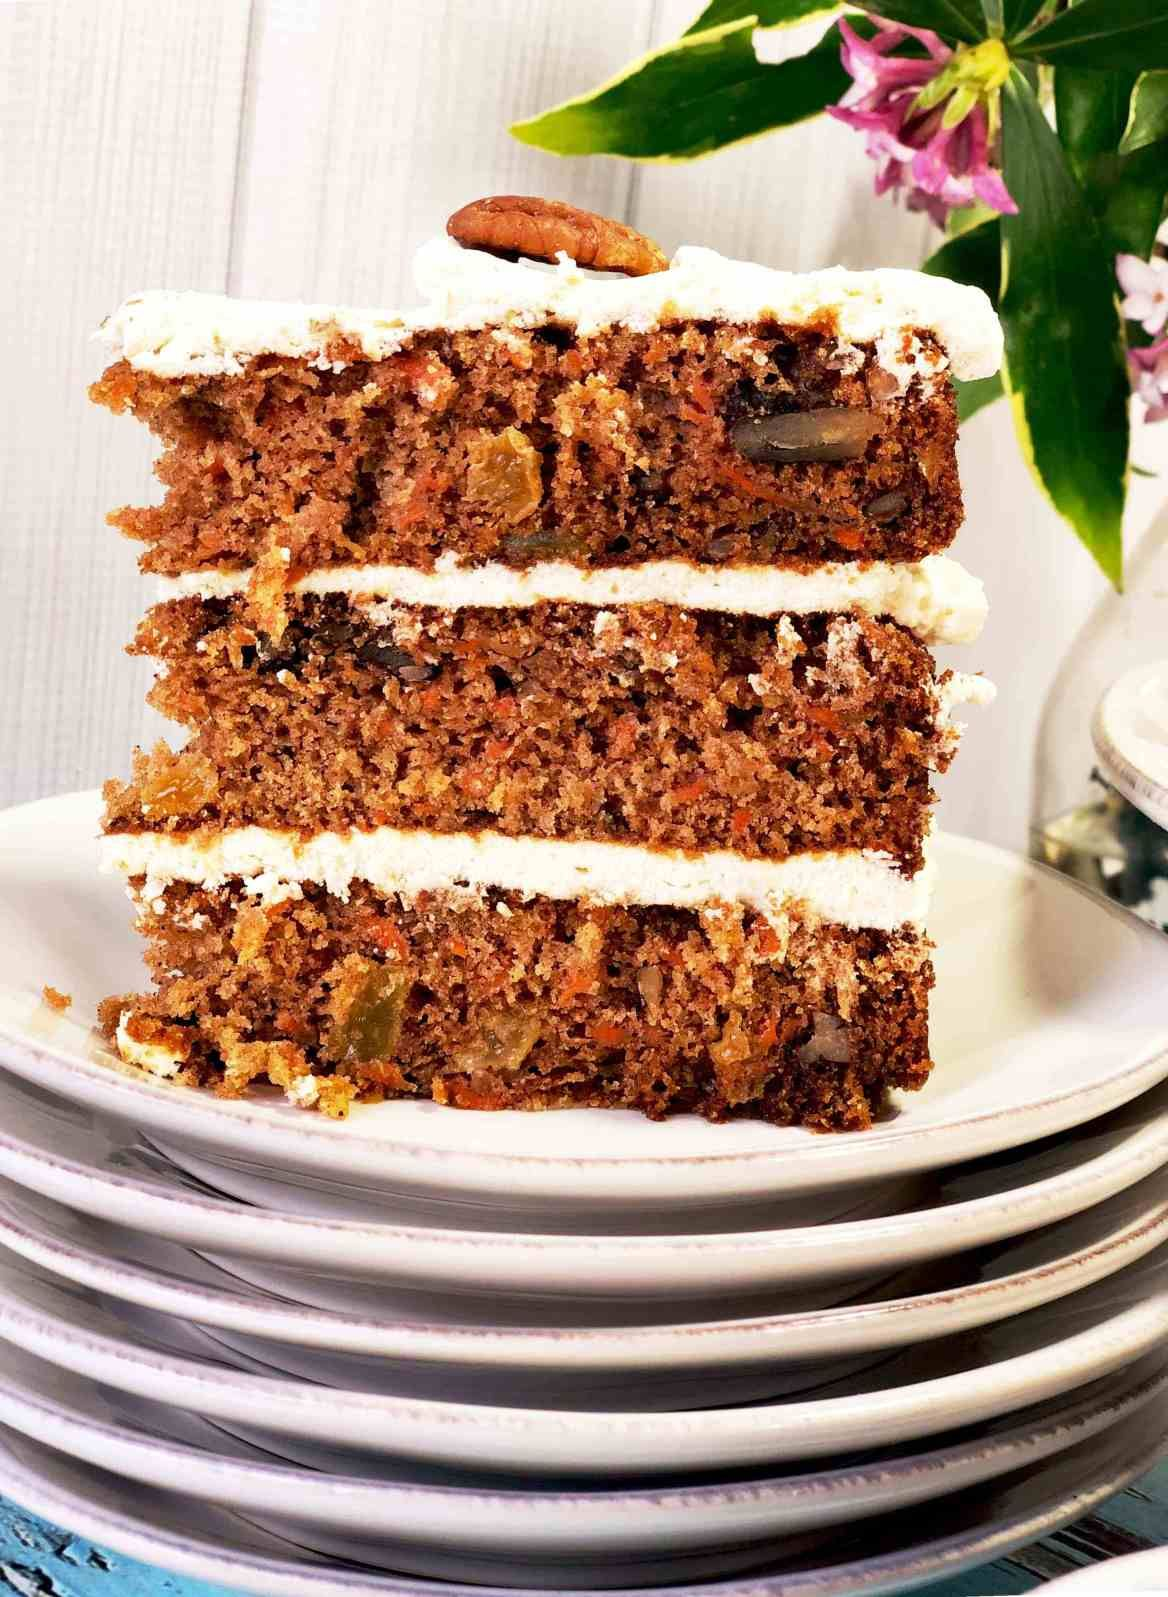 Carrot cake with cream cheese frosting hummingbird thyme